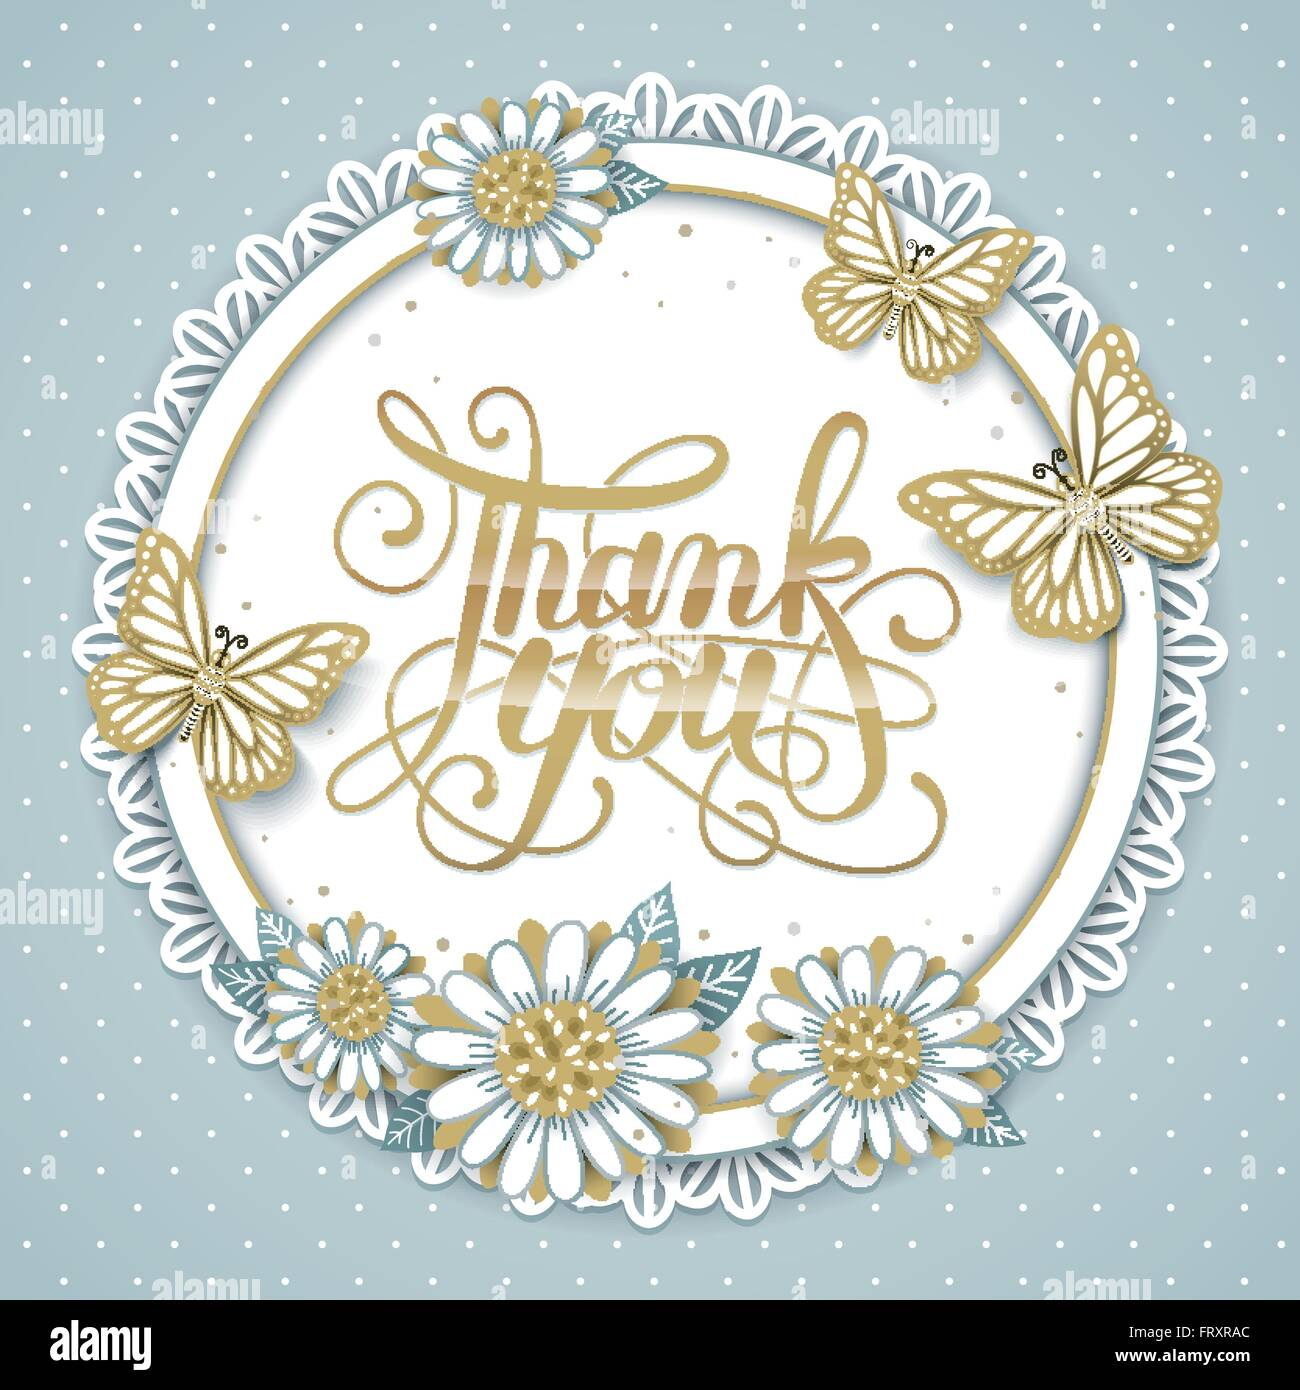 Elegant thank you decorative calligraphy poster design